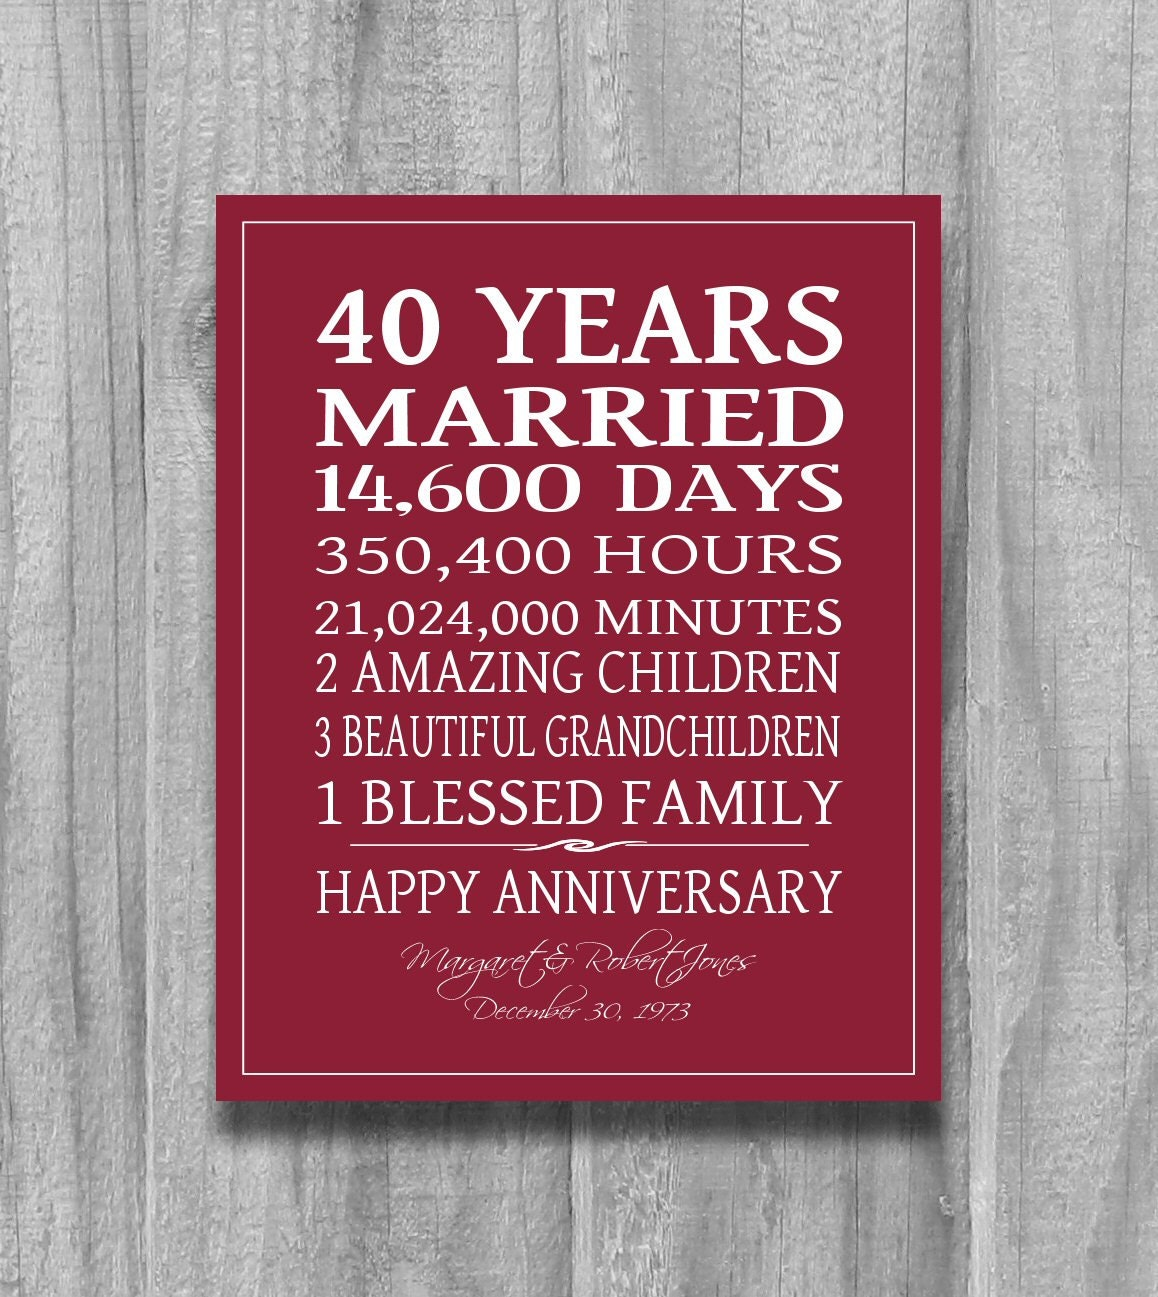 Gift Ideas 40th Wedding Anniversary: 40th Anniversary Gift For Parents Personalized 40 Year